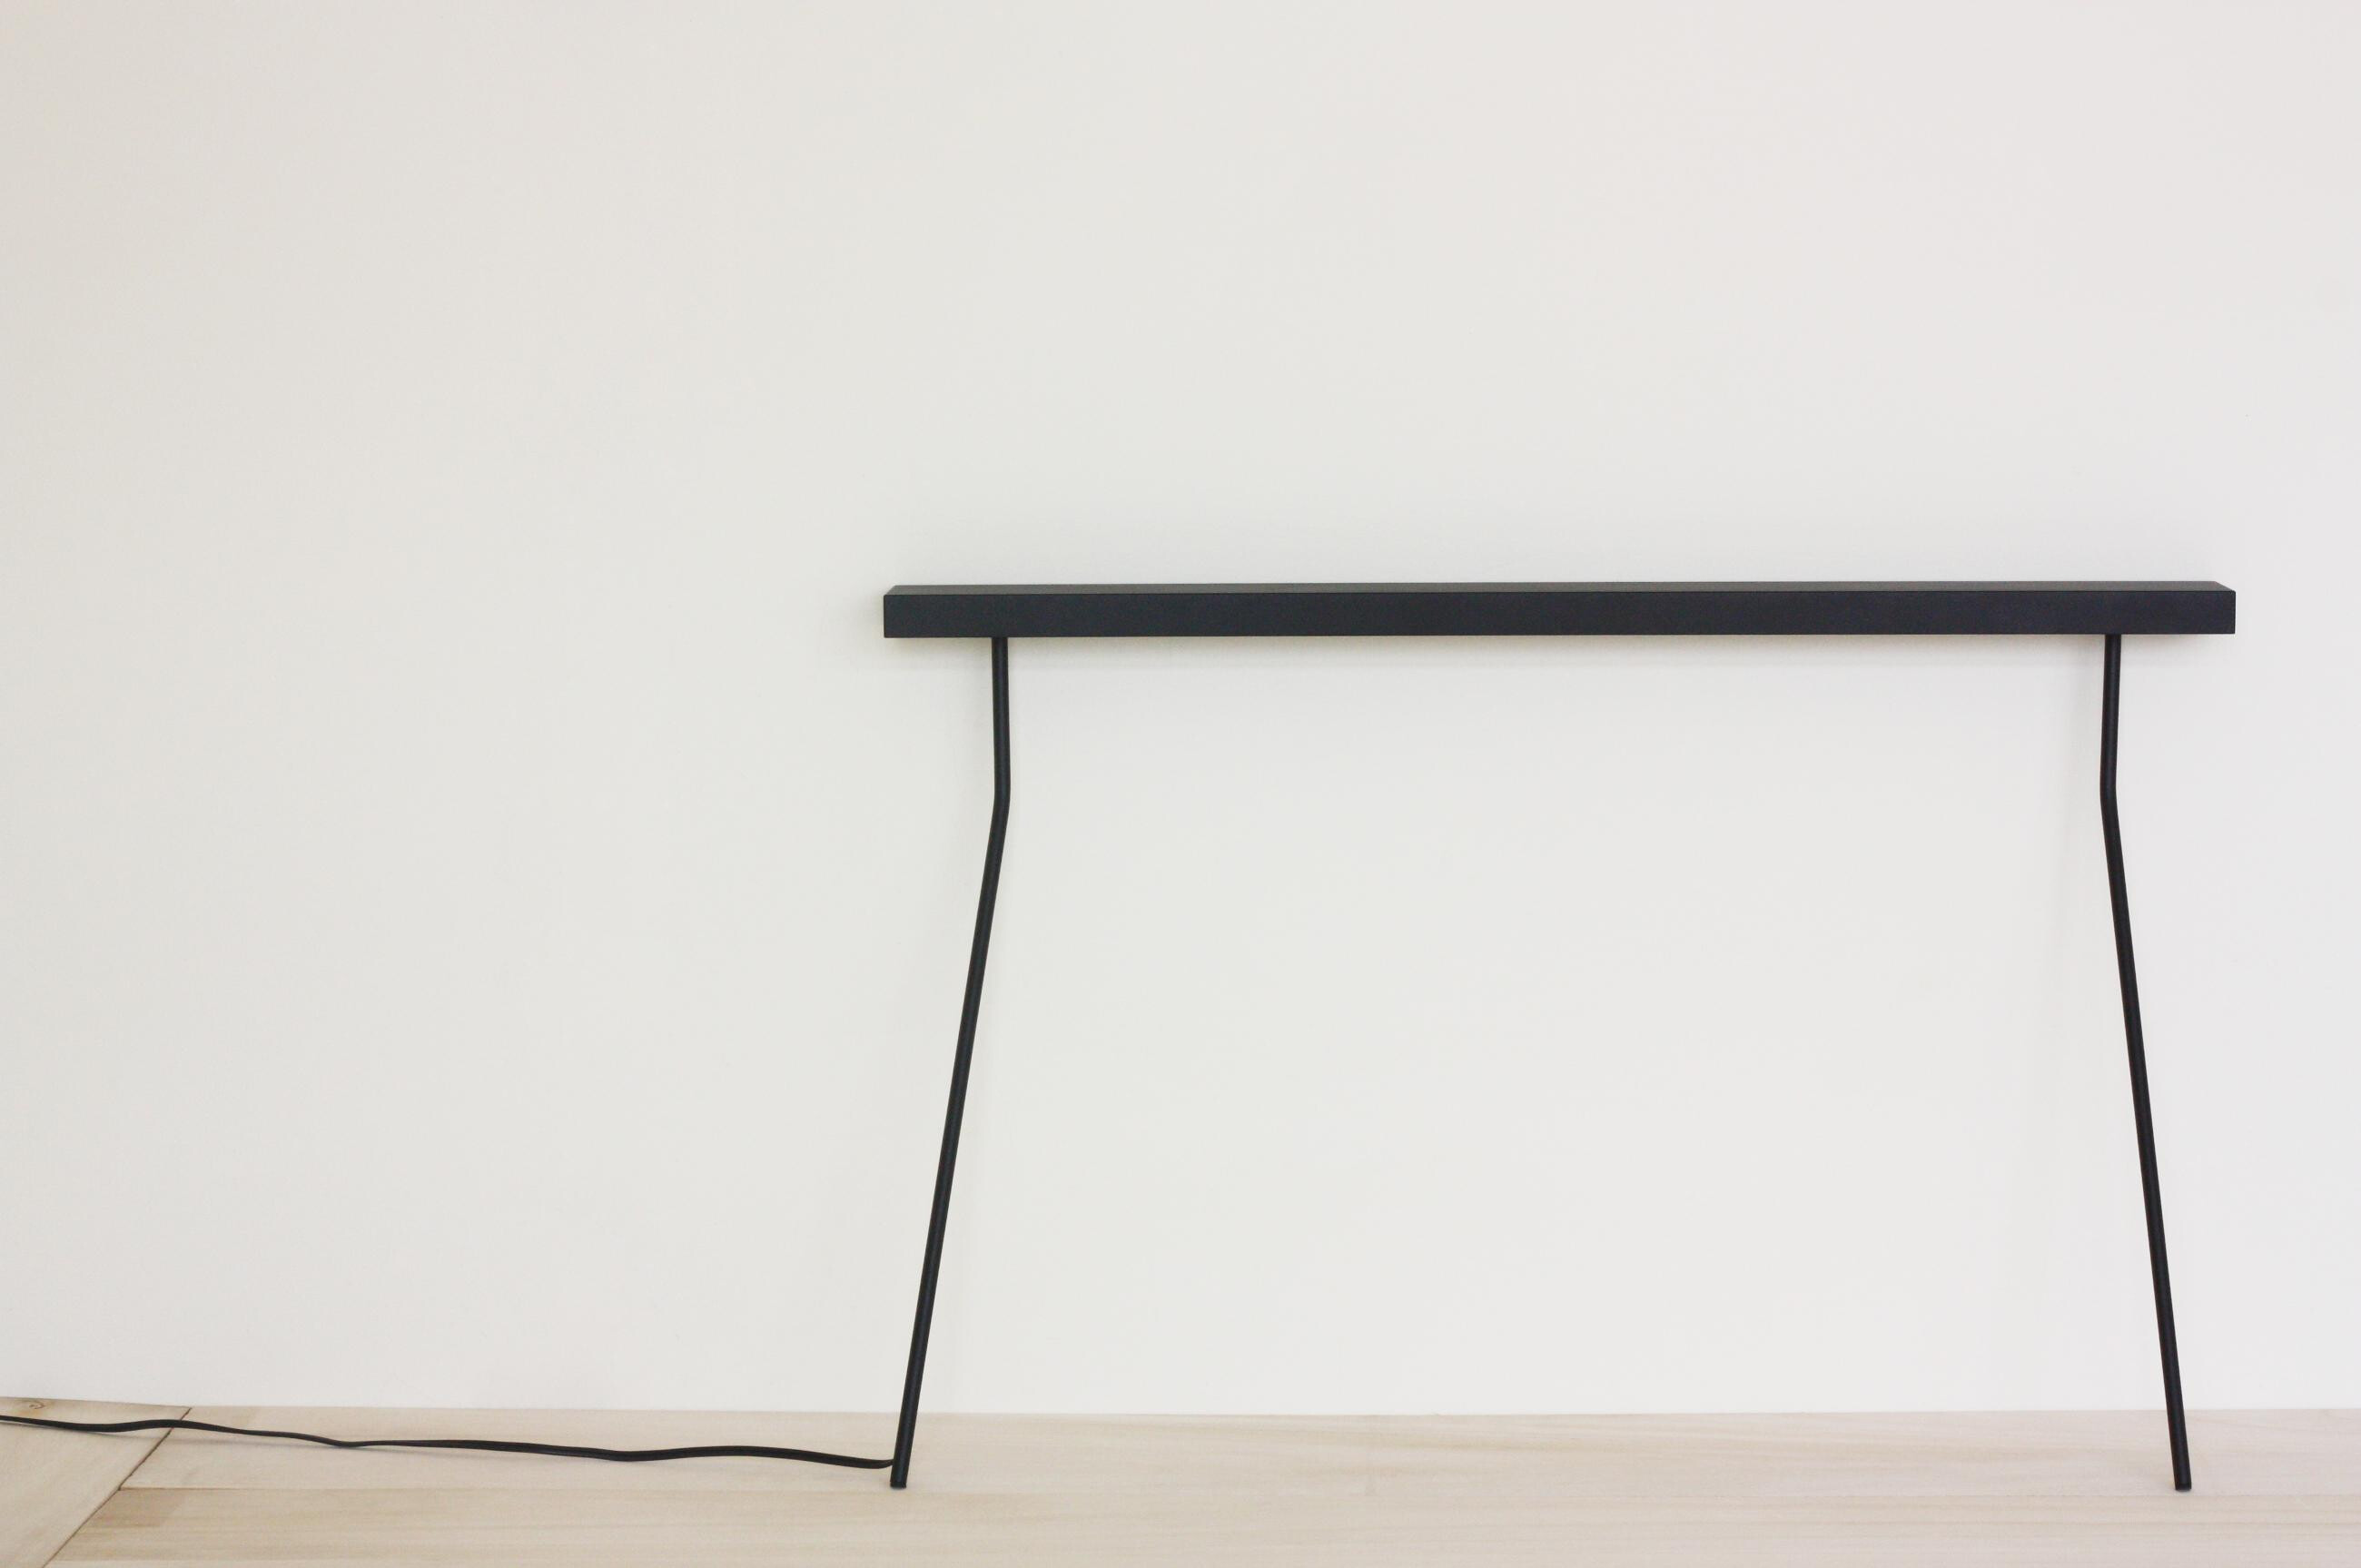 Leaning Table Light